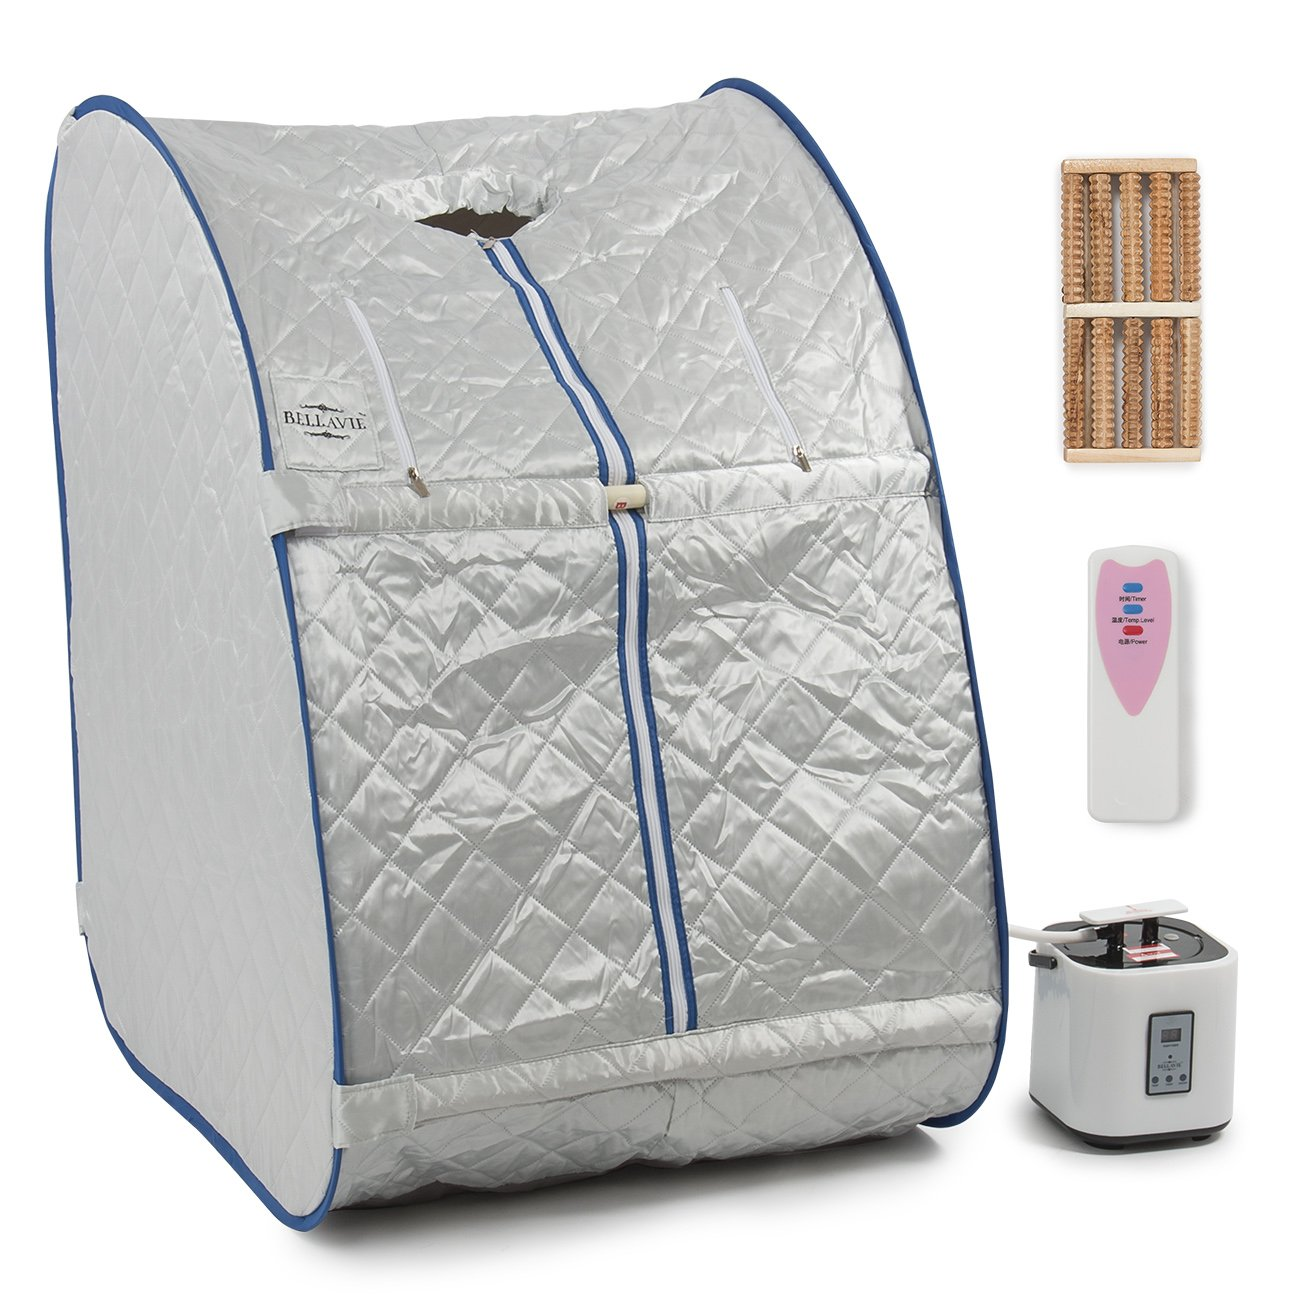 Bellavie Portable Steam Sauna.